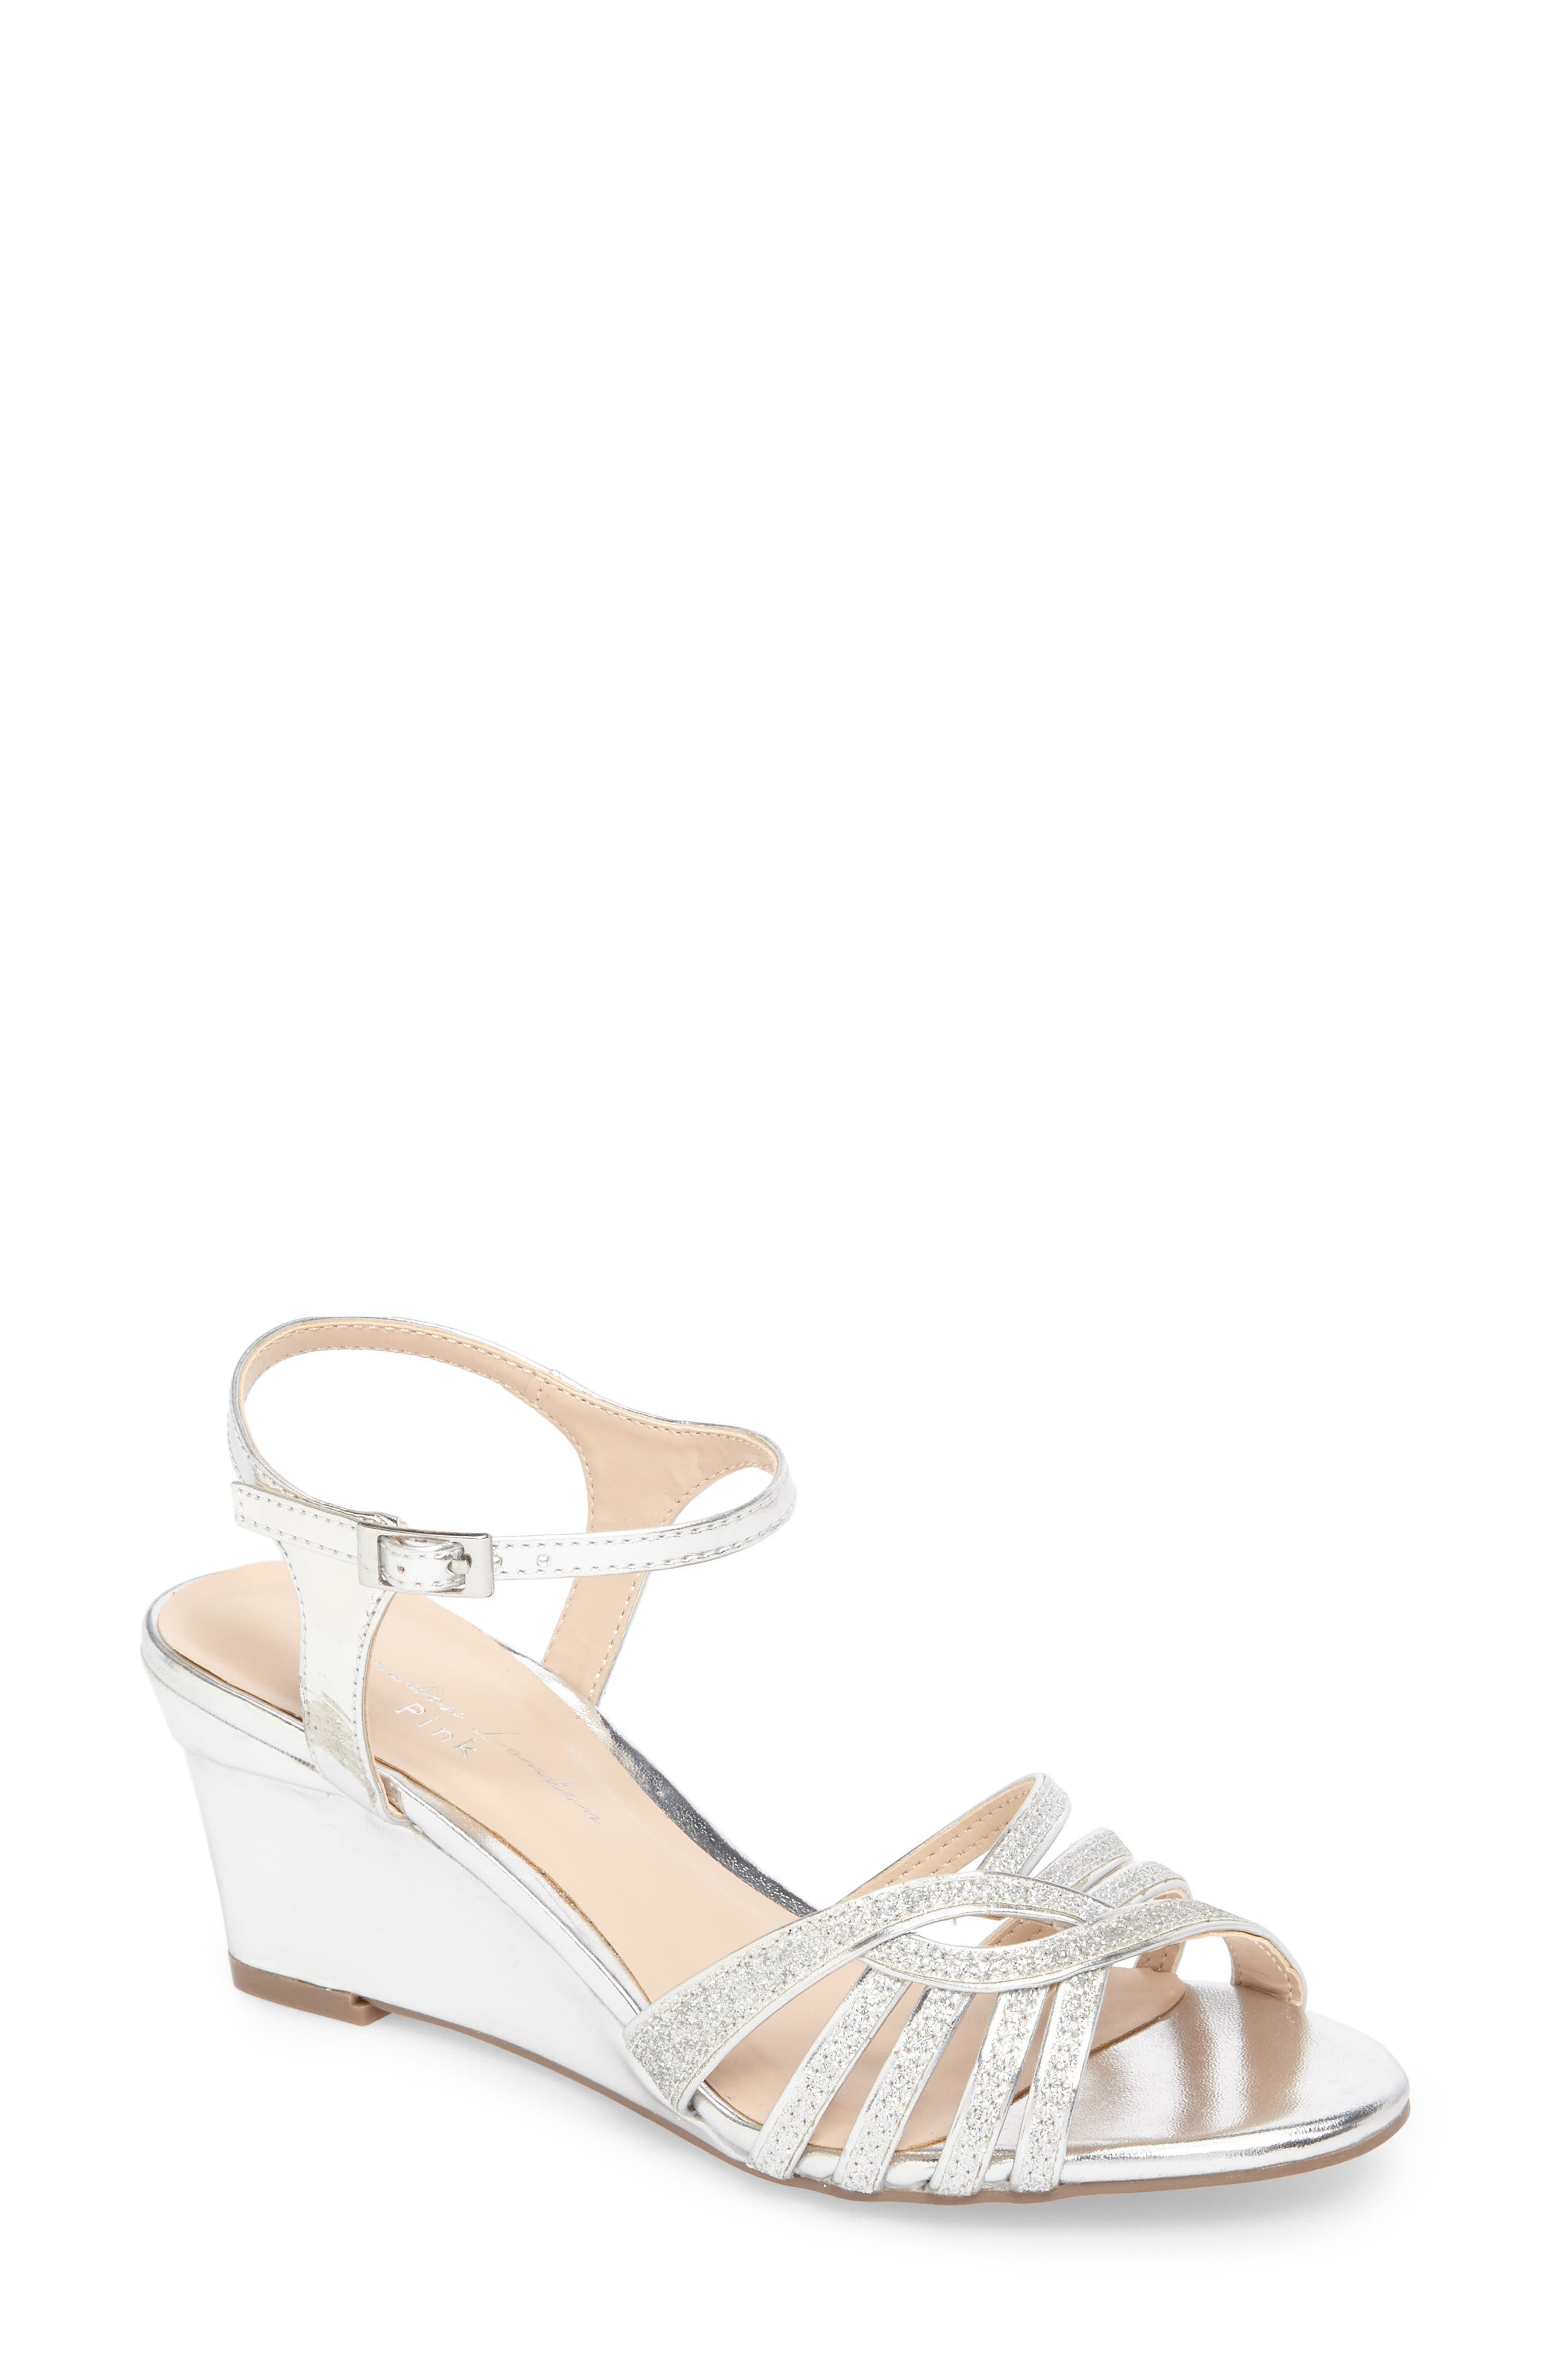 Karianne Wedge Sandal,                             Main thumbnail 1, color,                             Silver